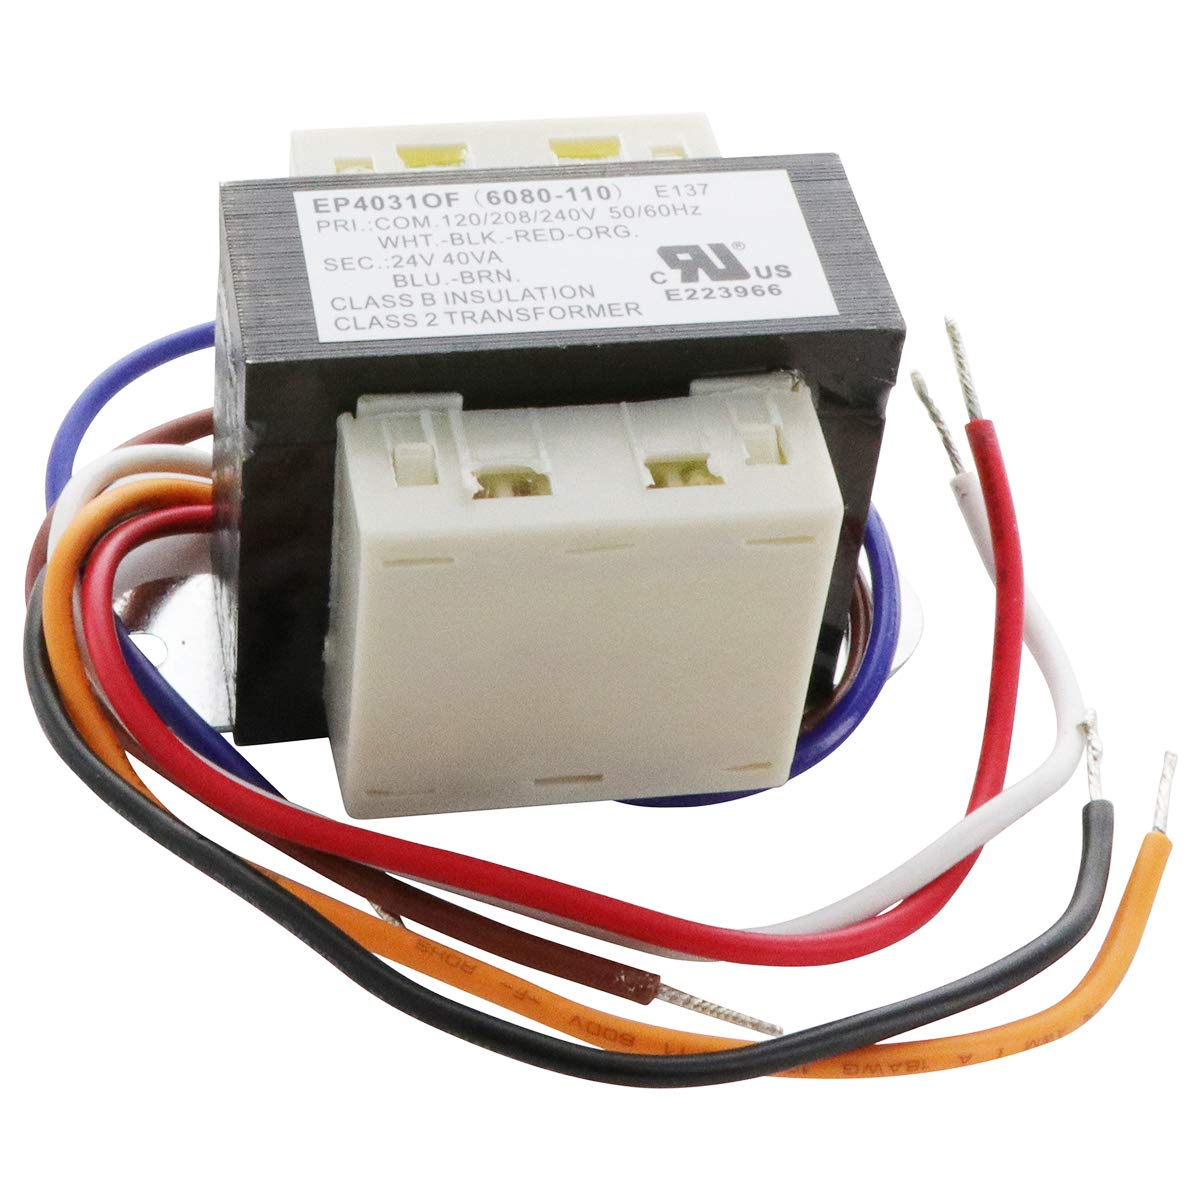 Endurance Pro 90-T40F3 Class 2 Transformers Thermostat Energy Limiting with Foot Mount, 24V Replacement for White Rodgers Emerson